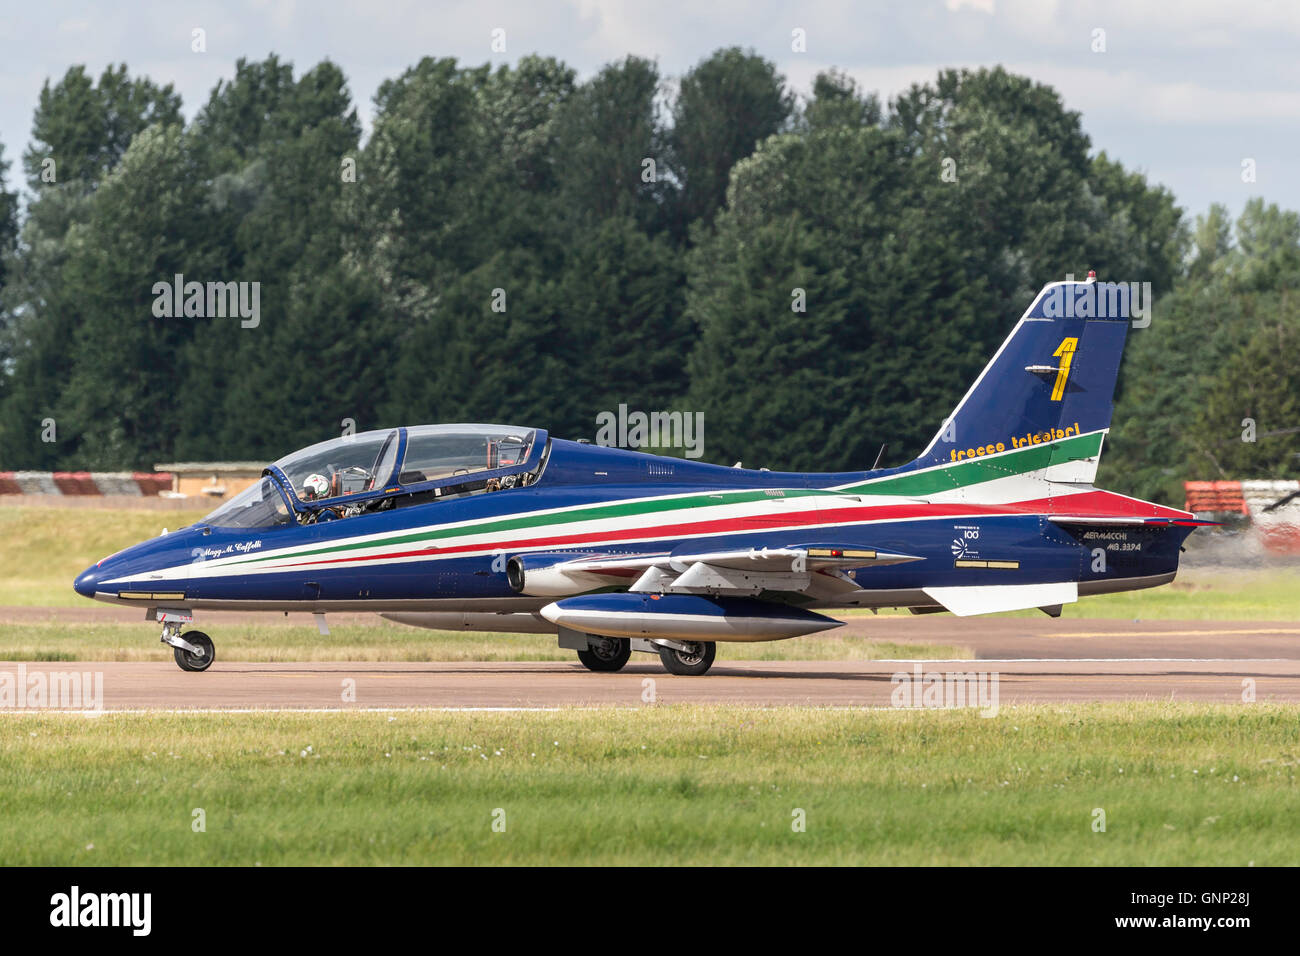 Frecce Tricolori formation aerobatic display team of the Italian Air Force Aeronautica Militare Italiano flying Stock Photo